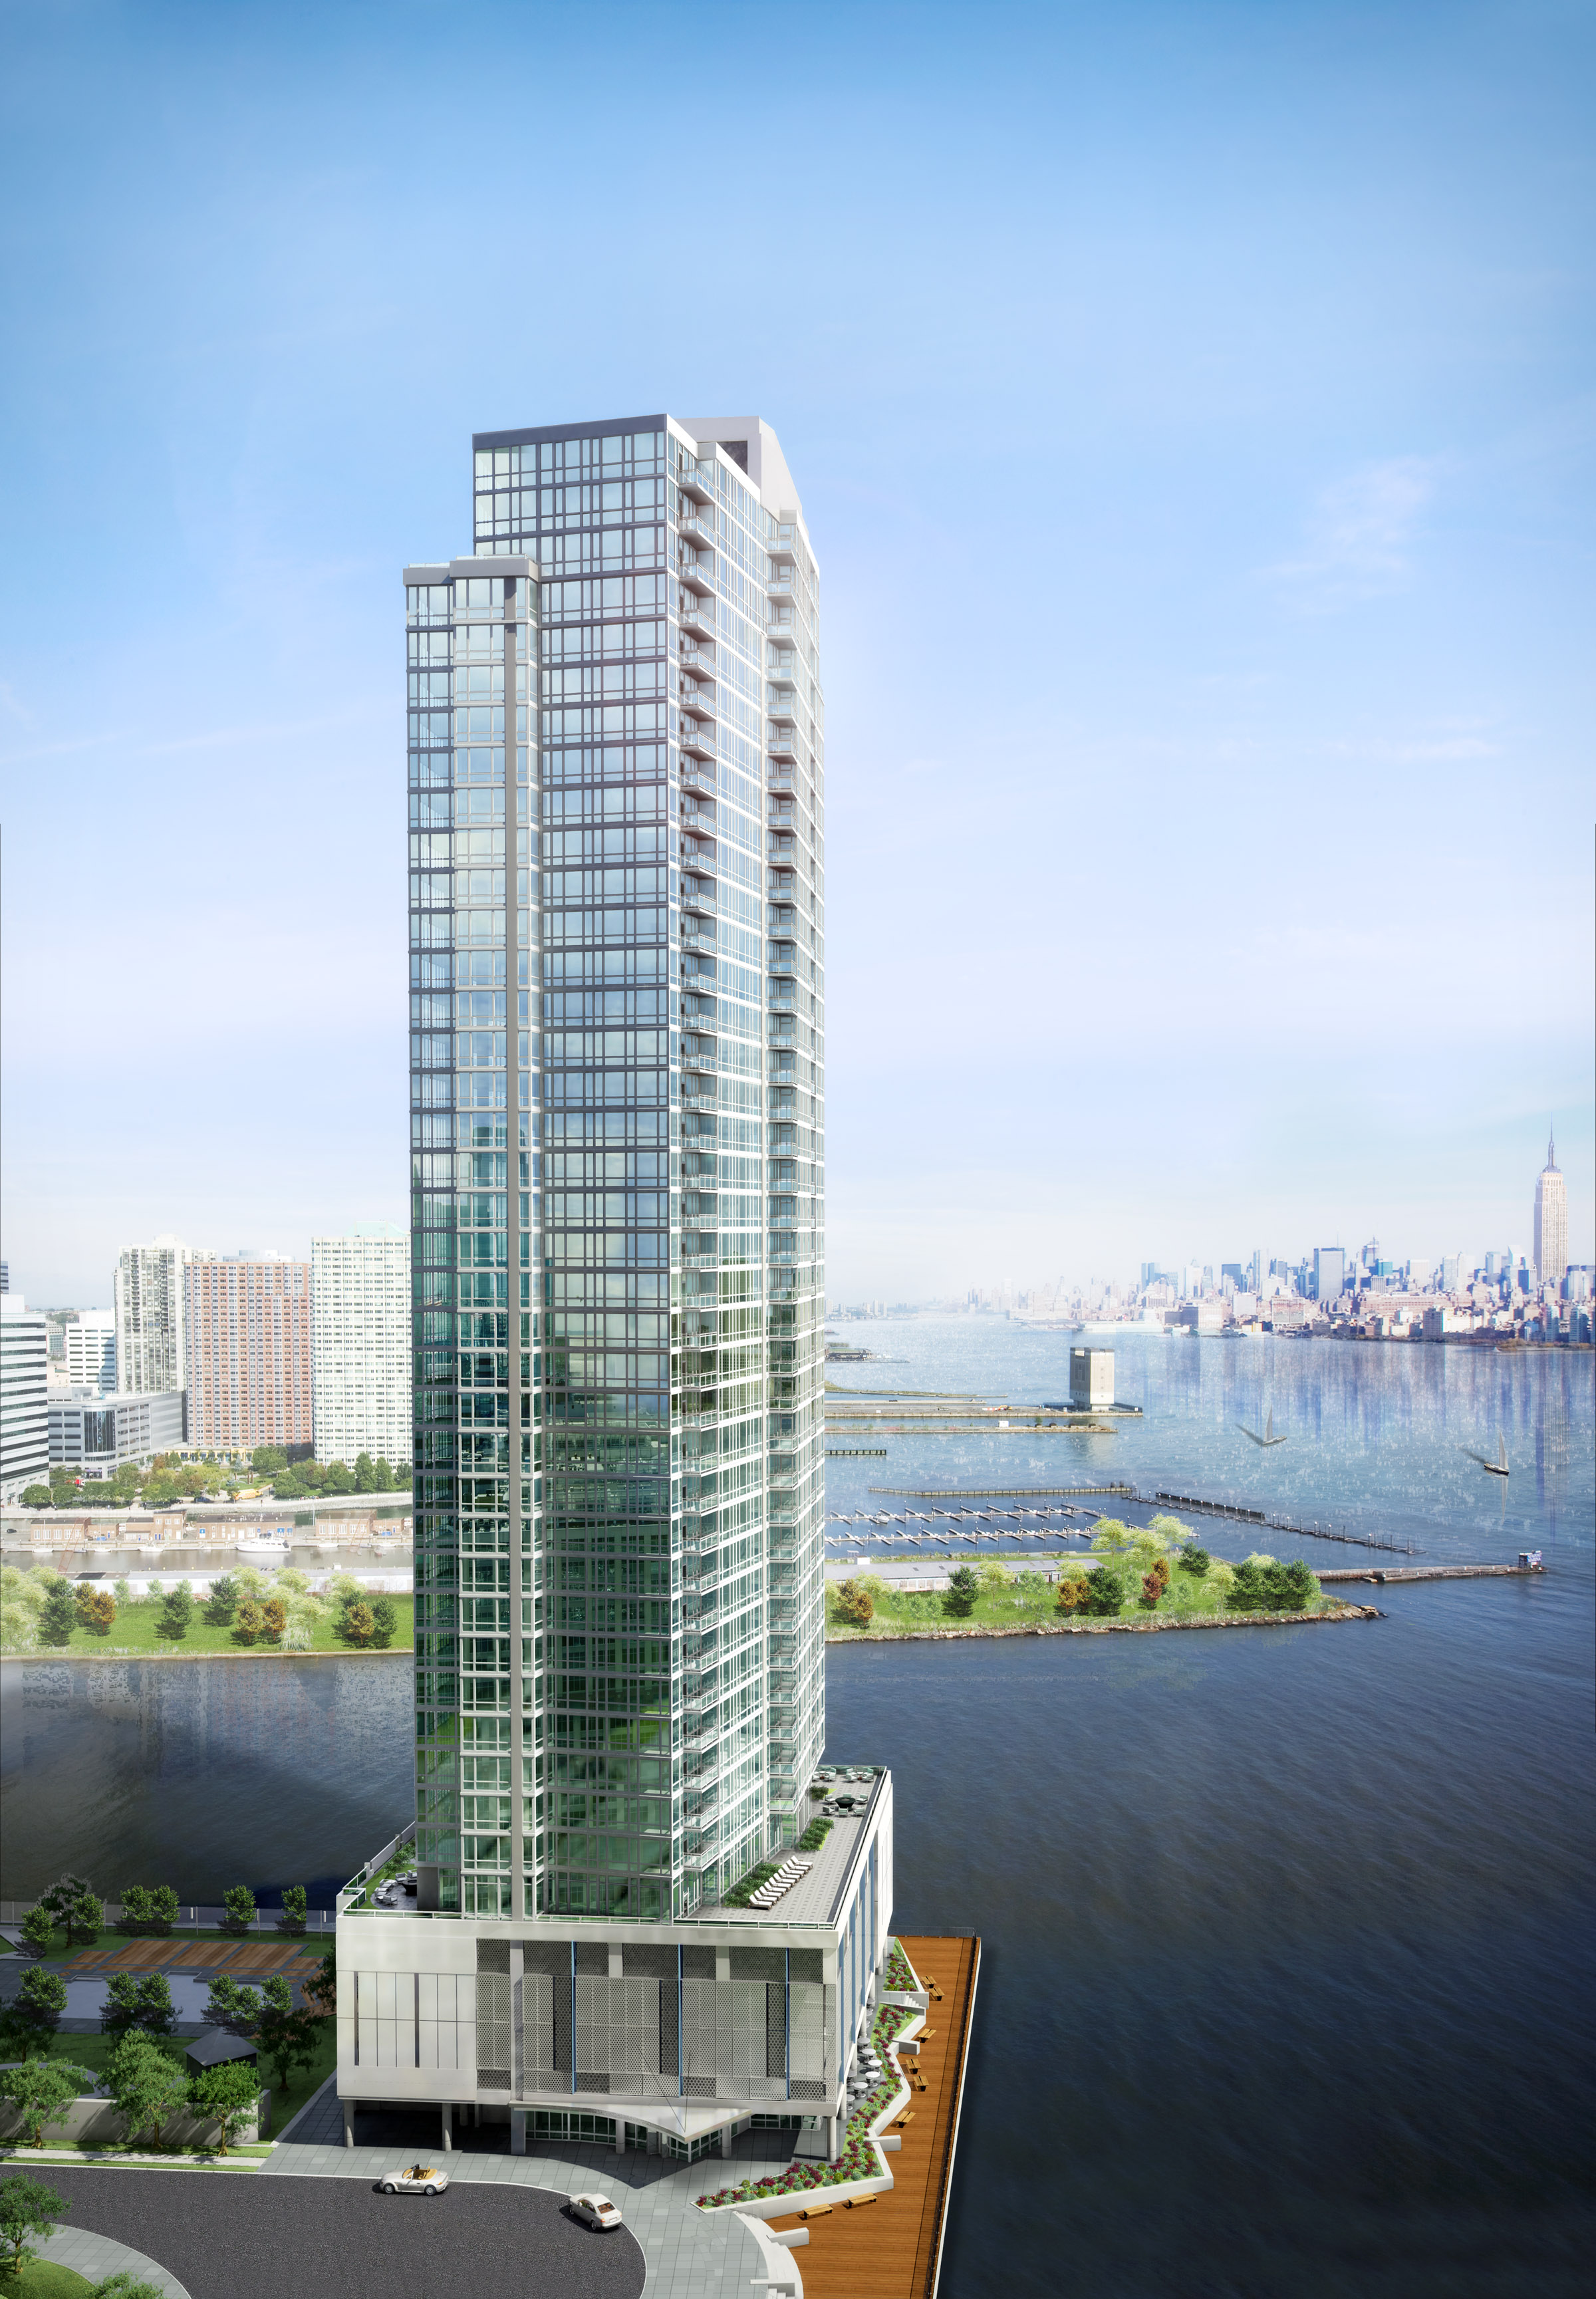 Crystal Point Condominiums in downtown Jersey City, N.J.